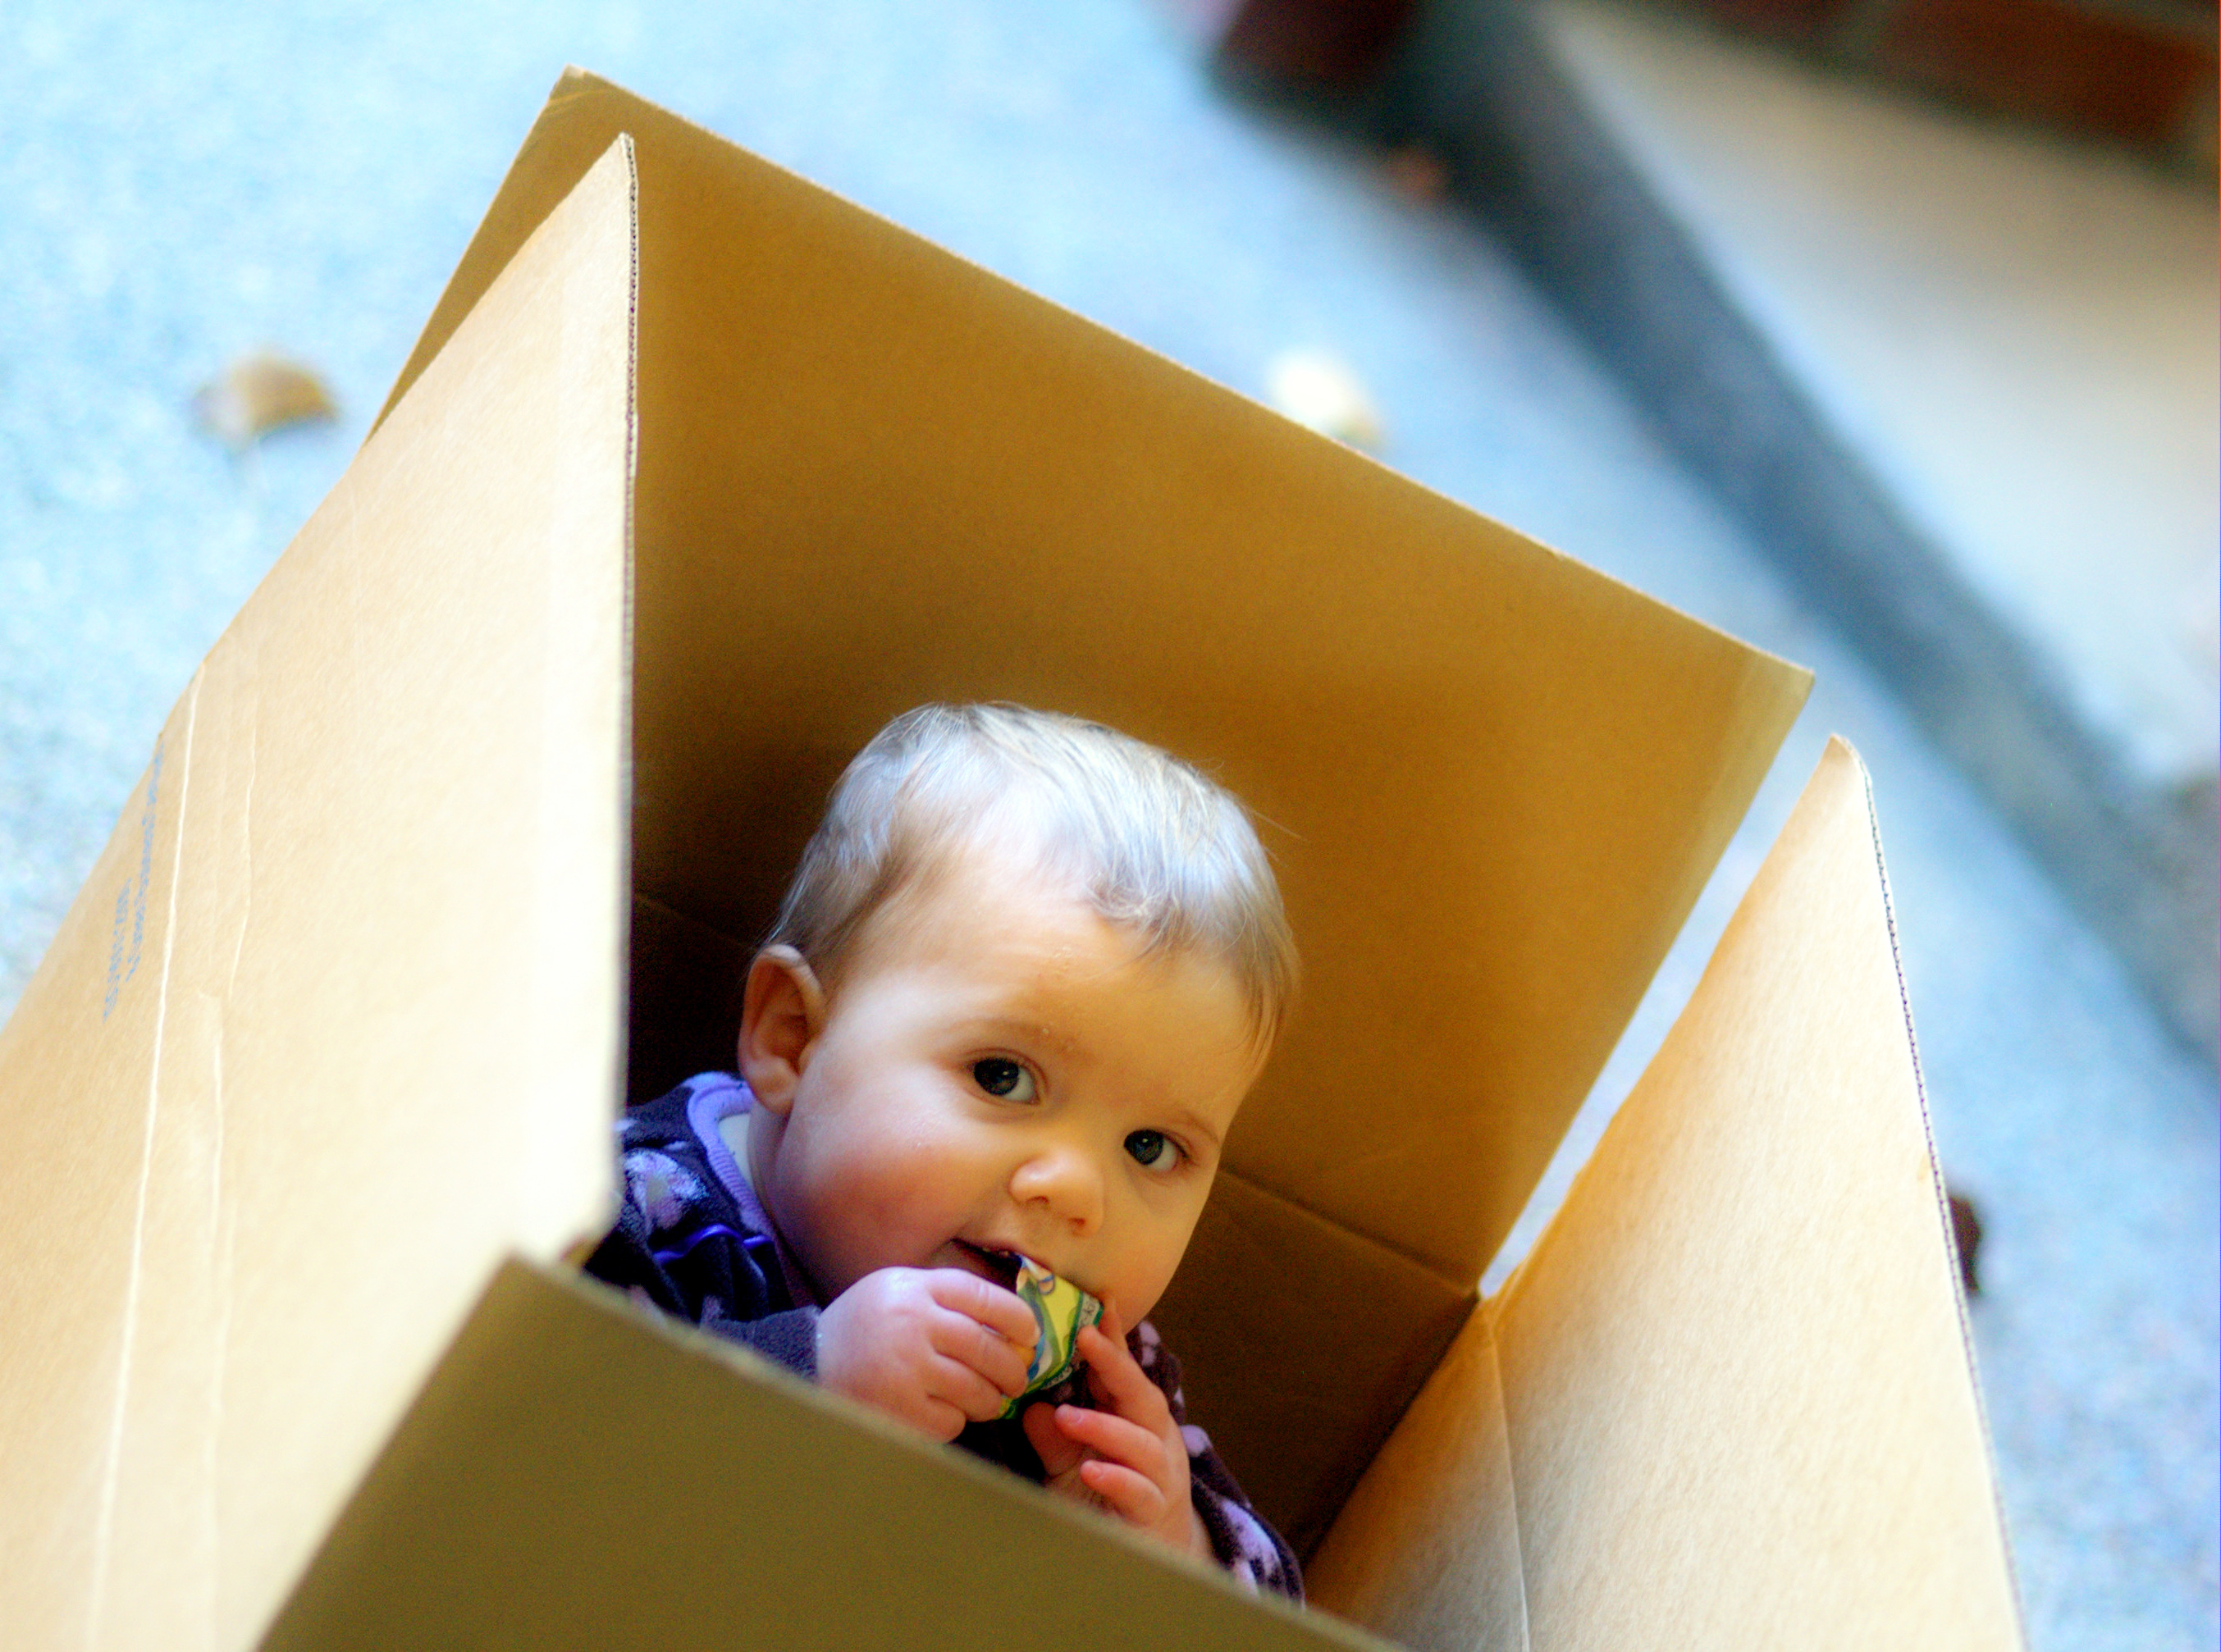 Baby in cardboard box; image by David Goehring, via Flickr, CC BY 2.0, no changes.